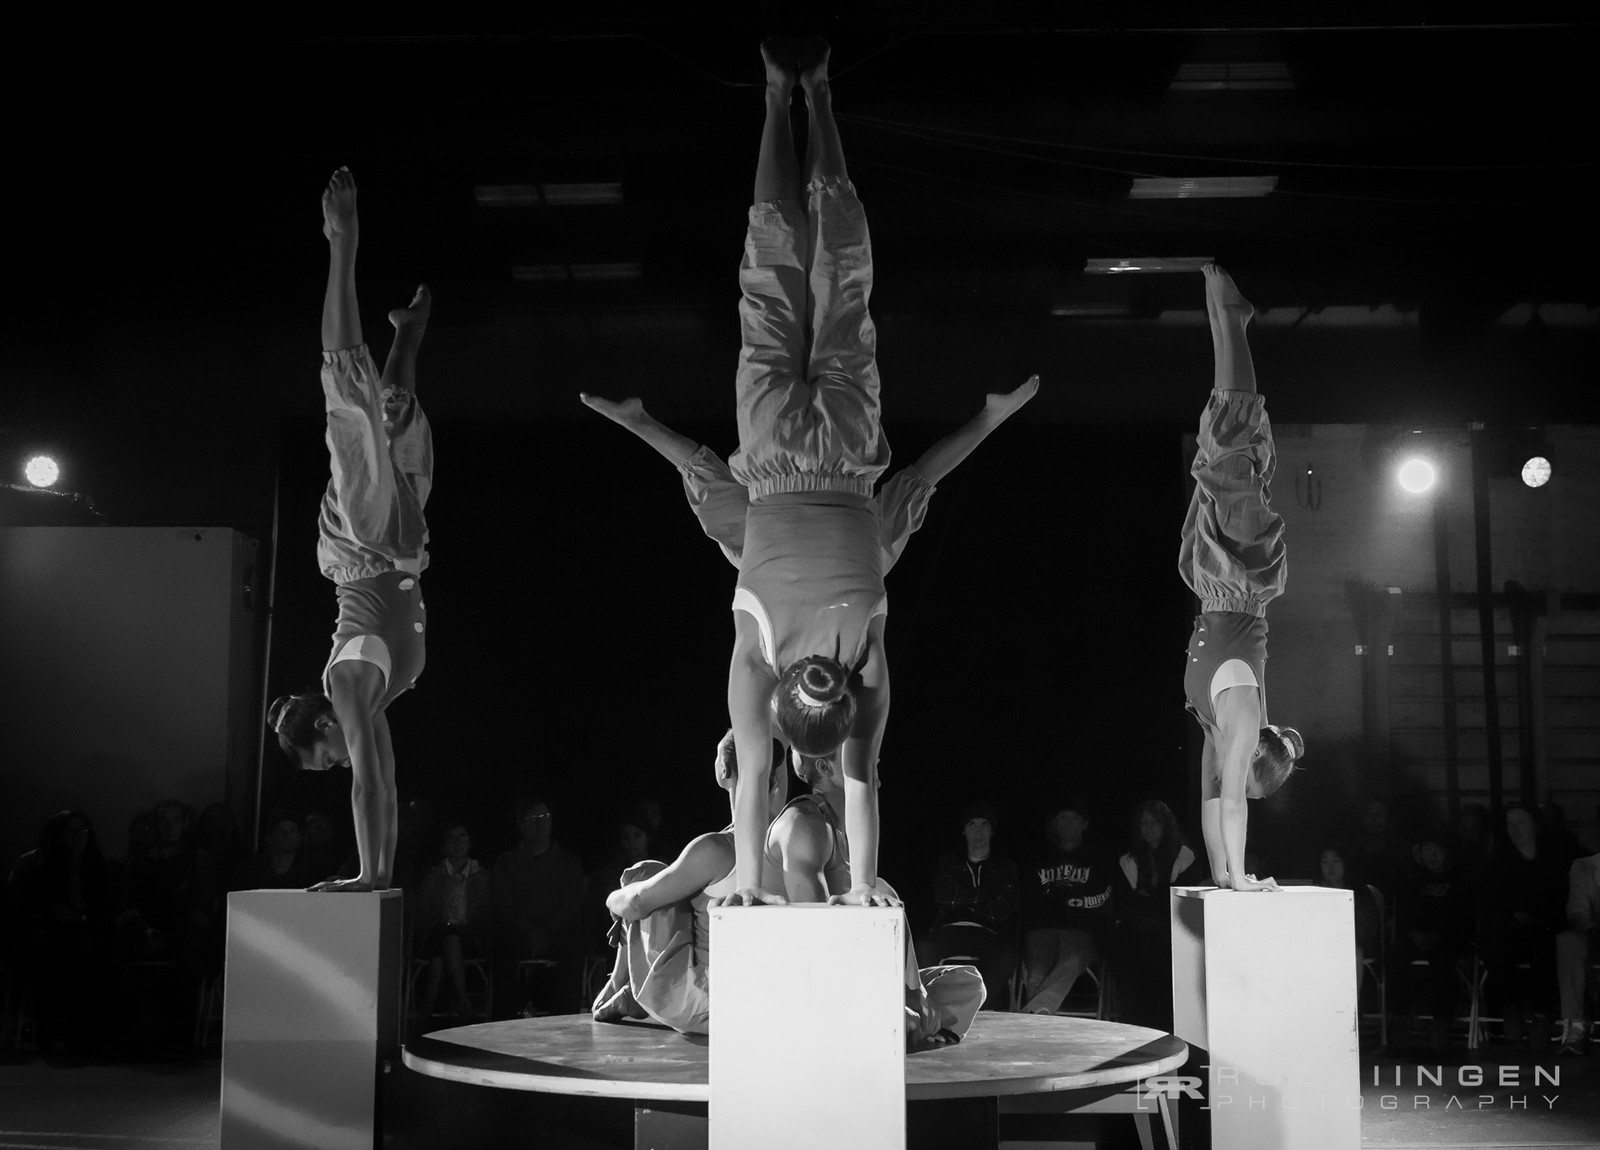 Handstands on boxes in group circus performance